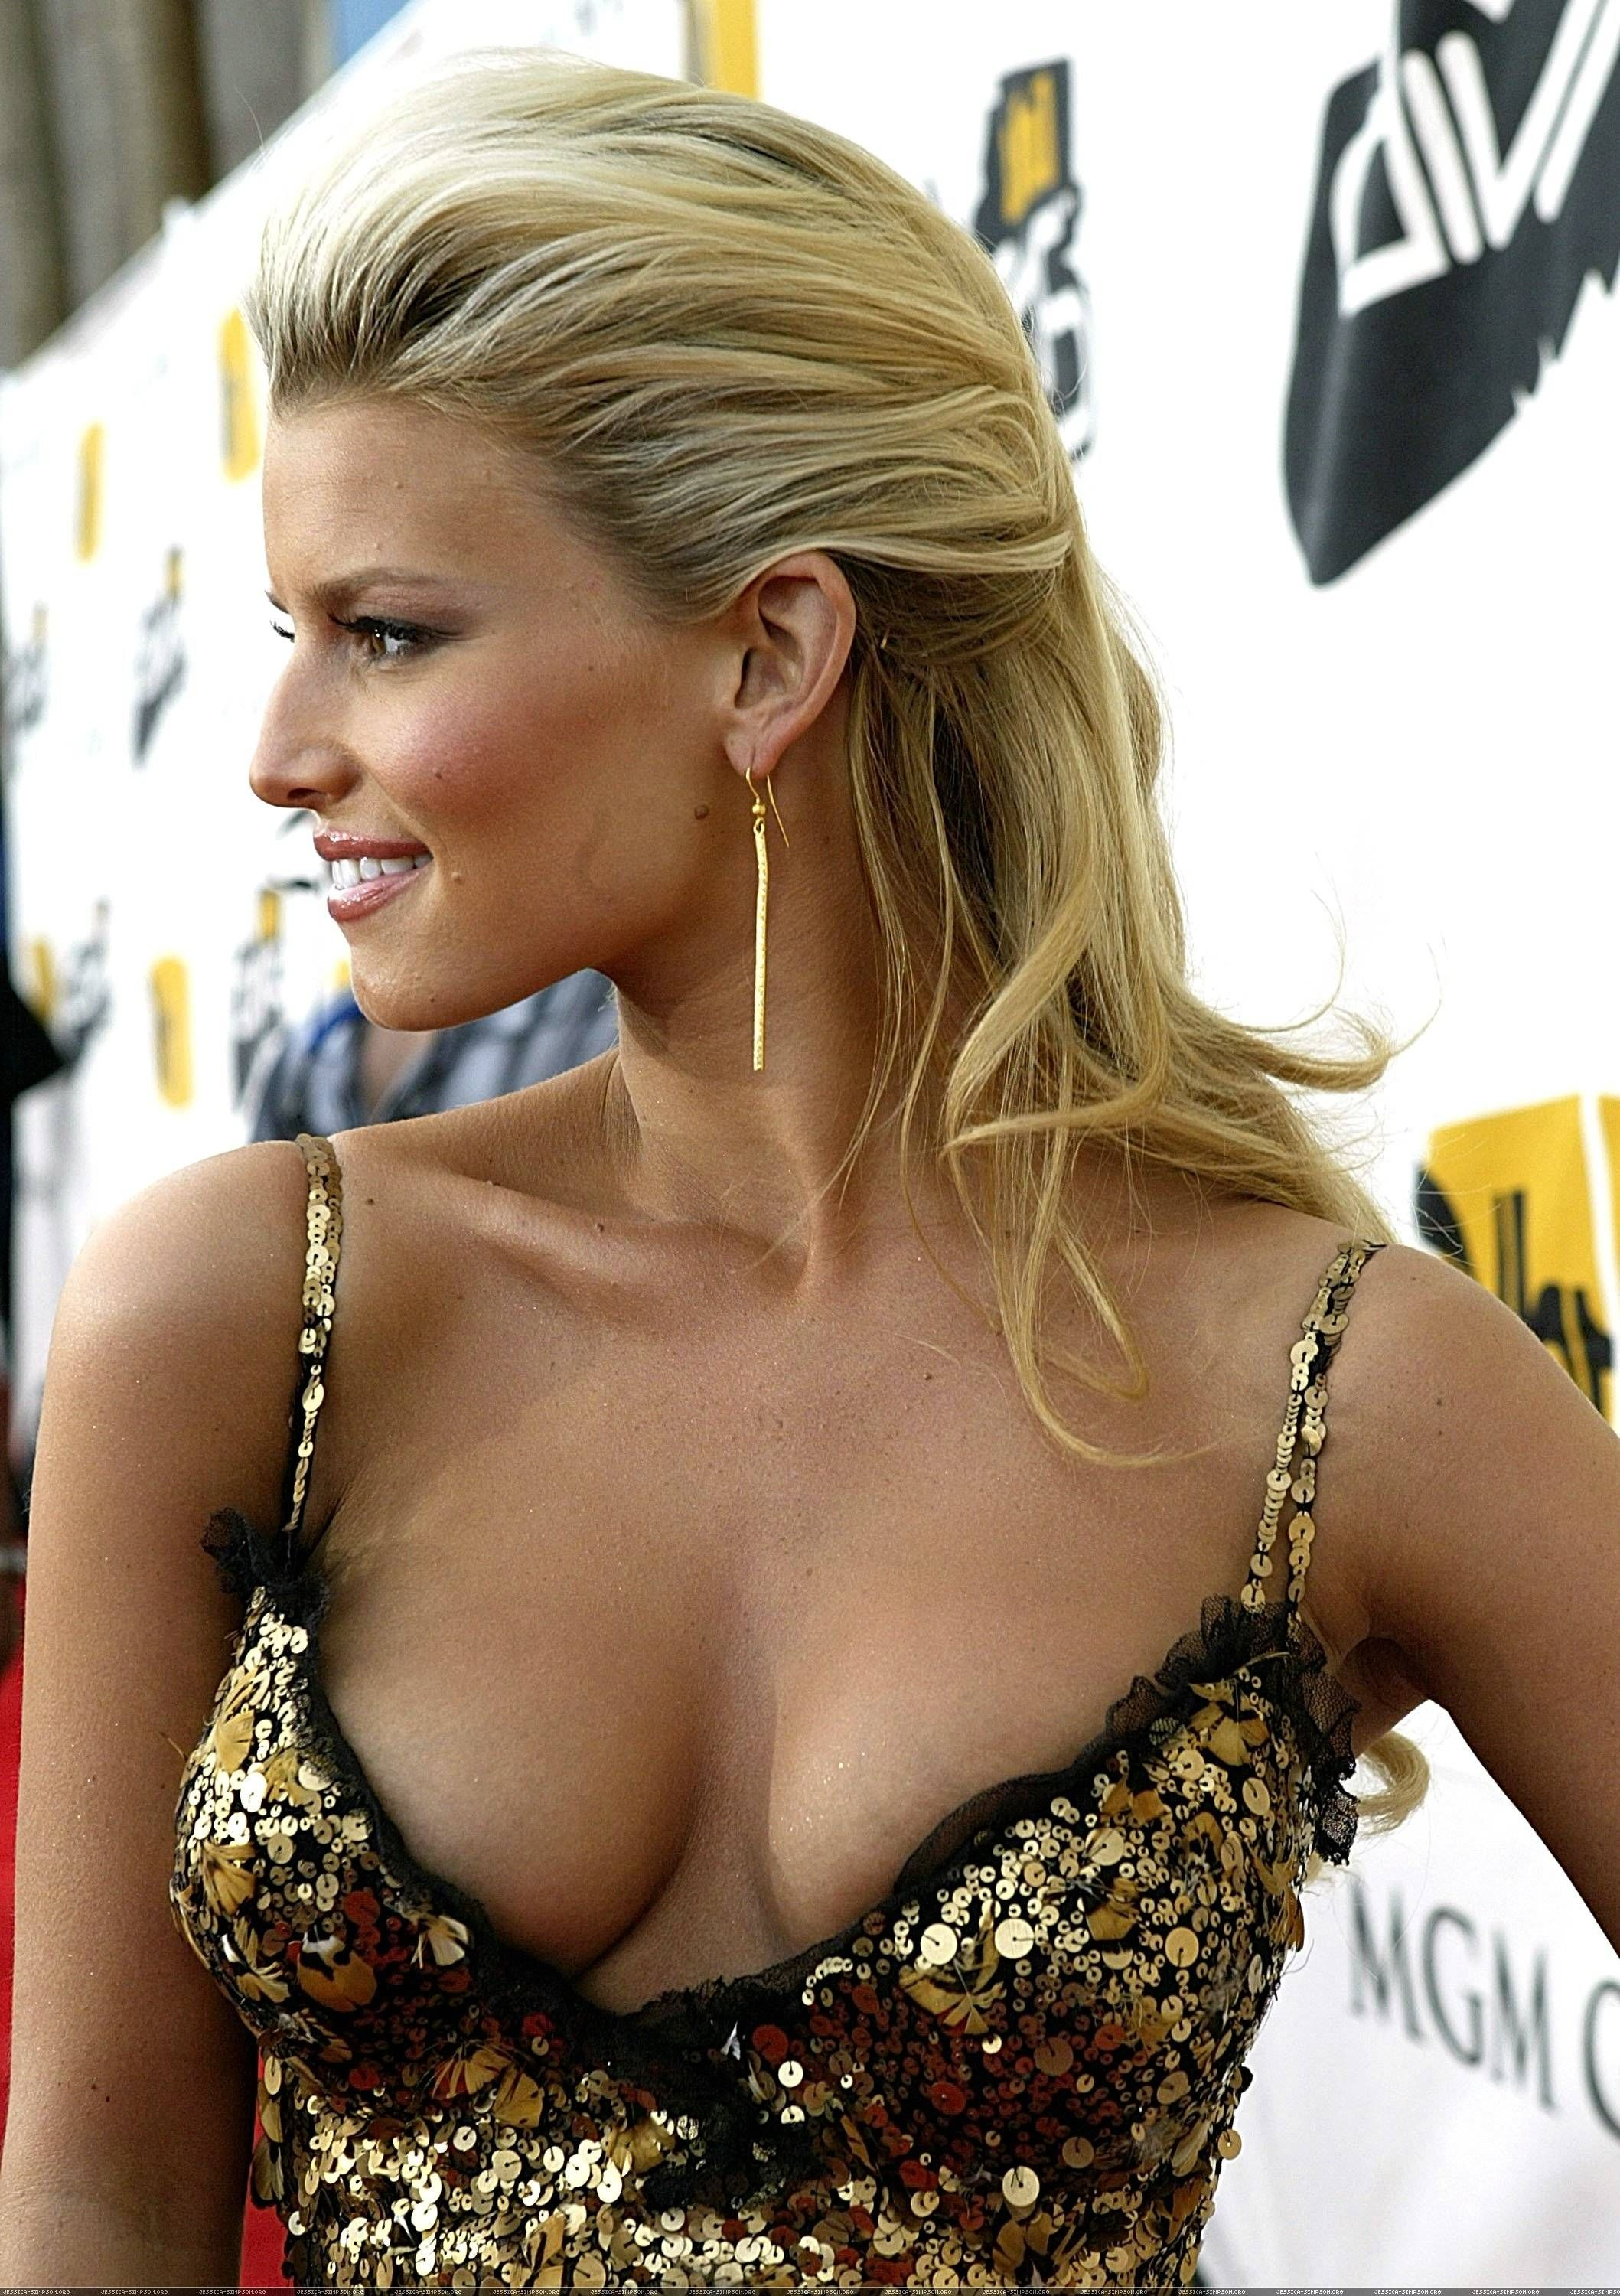 jessica simpson breast exposed singer actresses jessica simpson hot